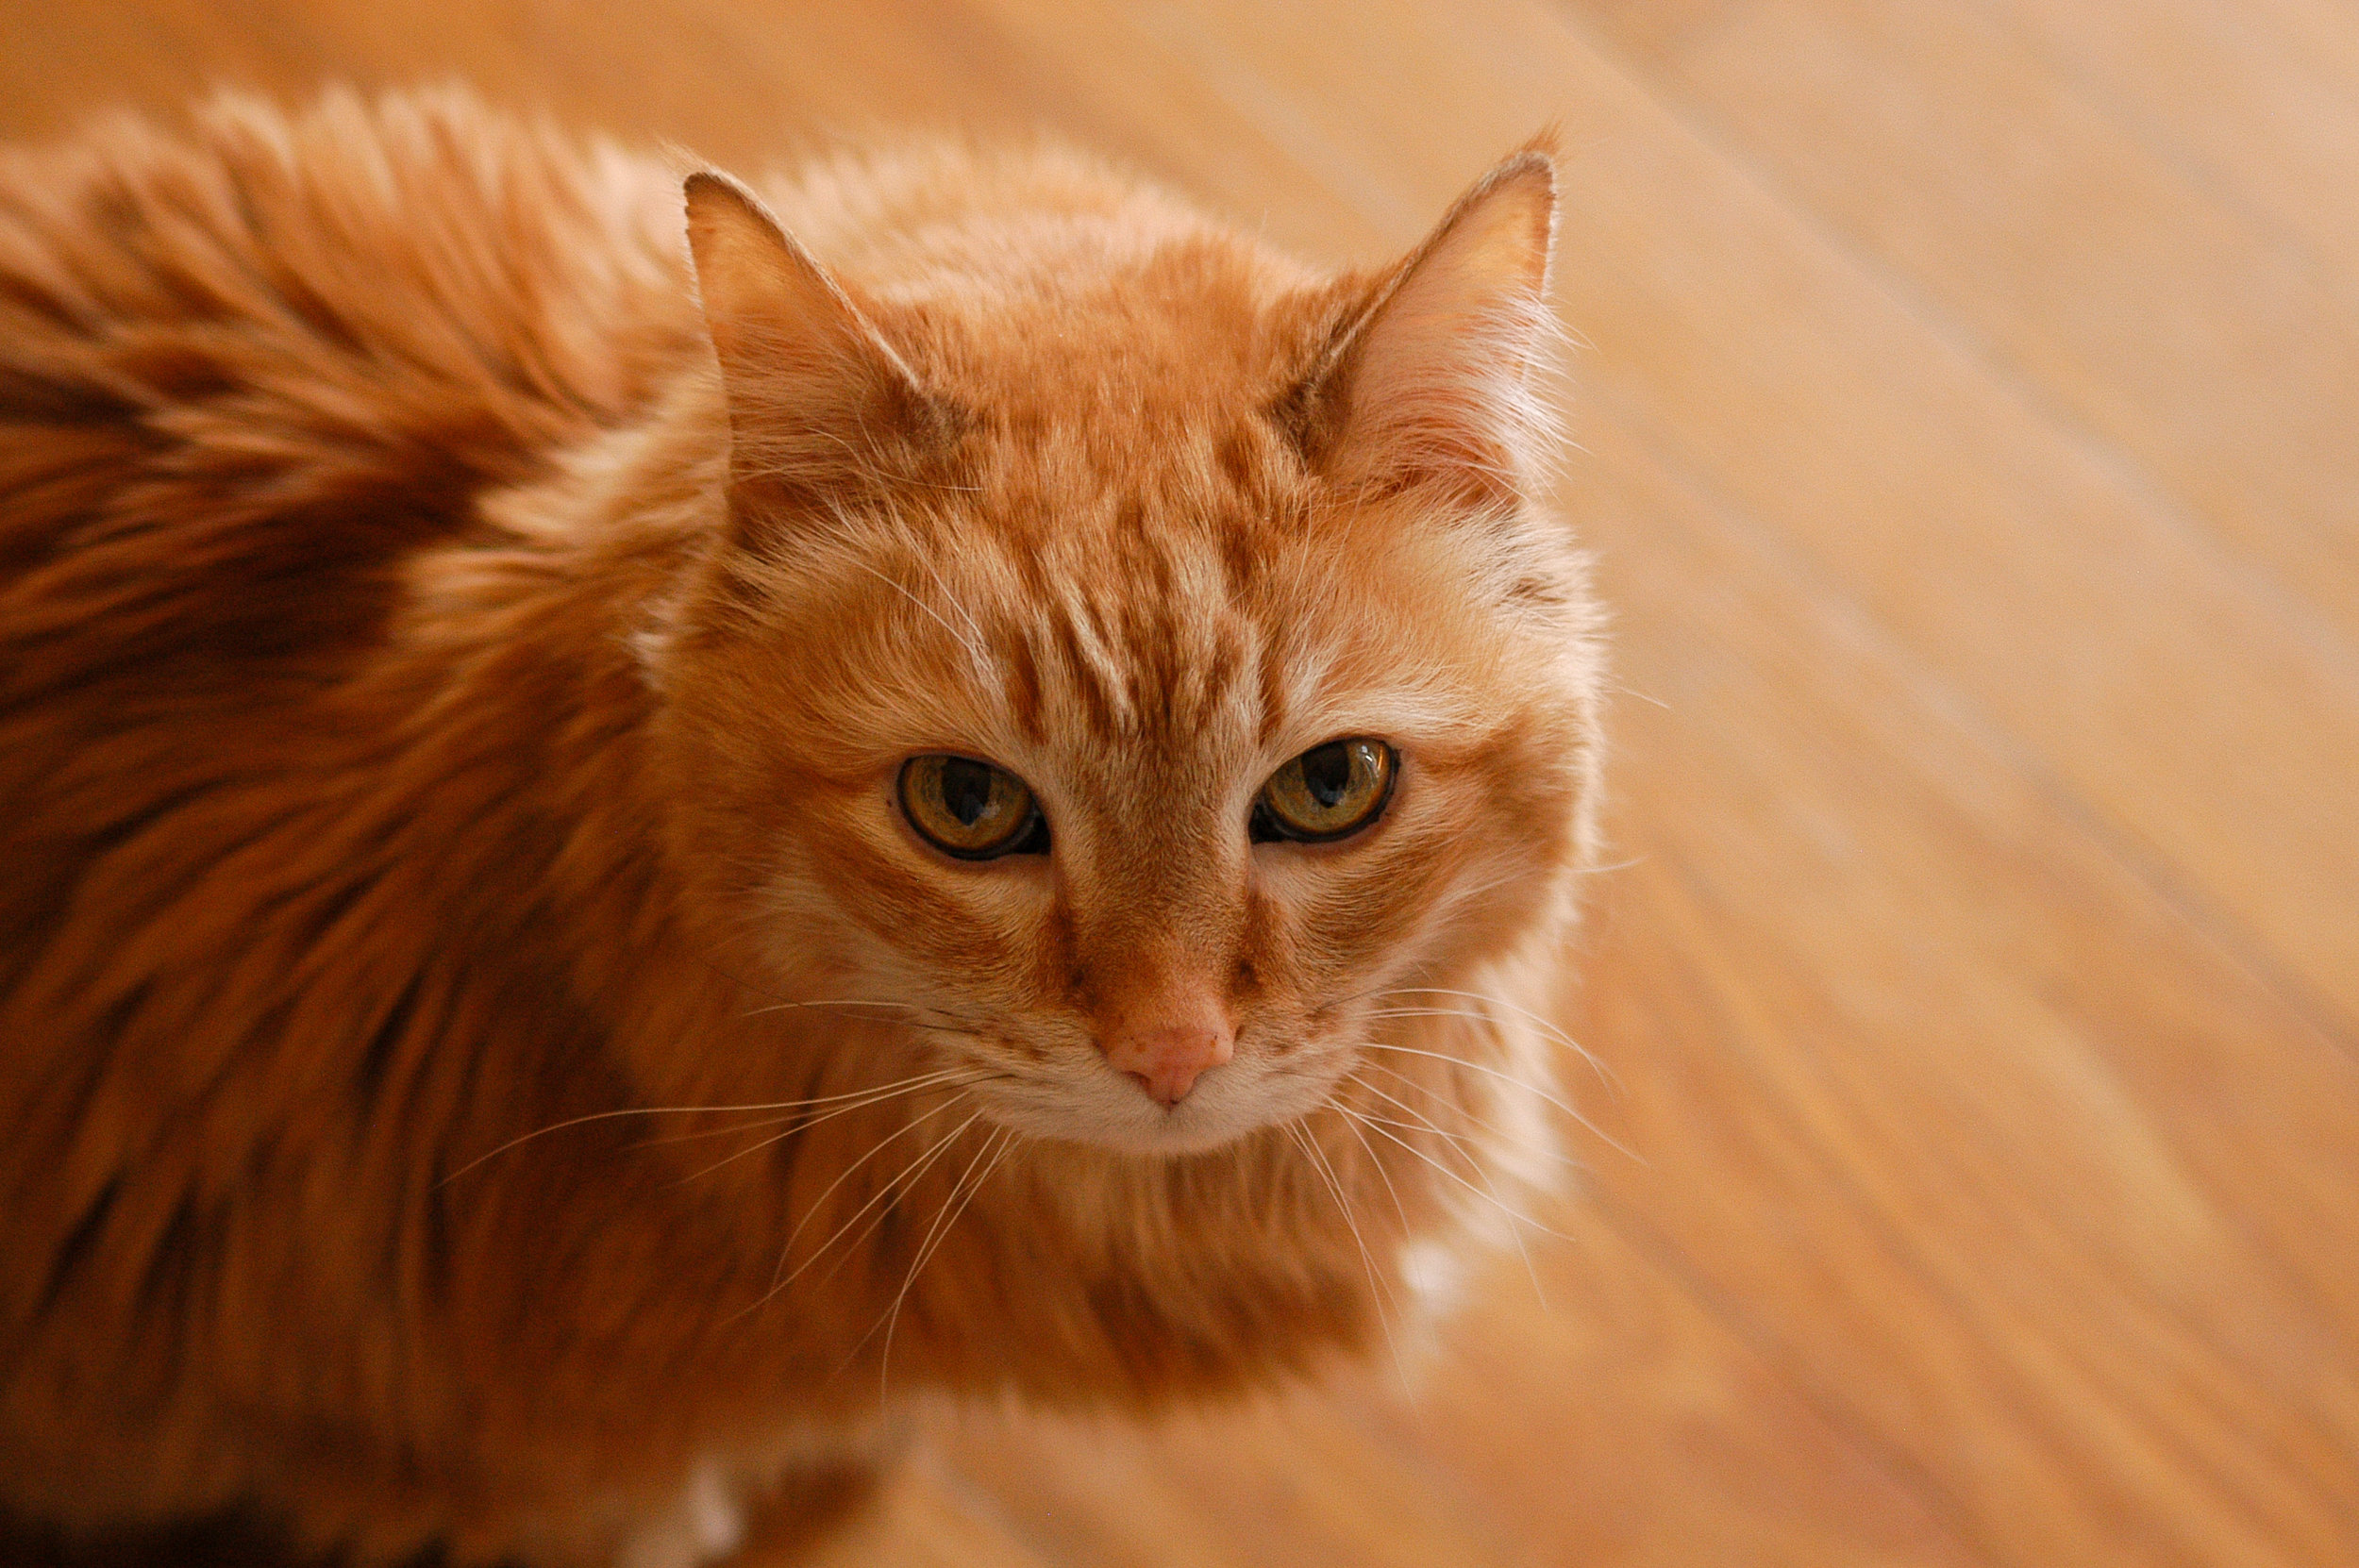 cats are like kids - Over half of American households with cats view their cats as members of their family. Just like kids, cats need our protection, and will thrive in an enriching home environment.